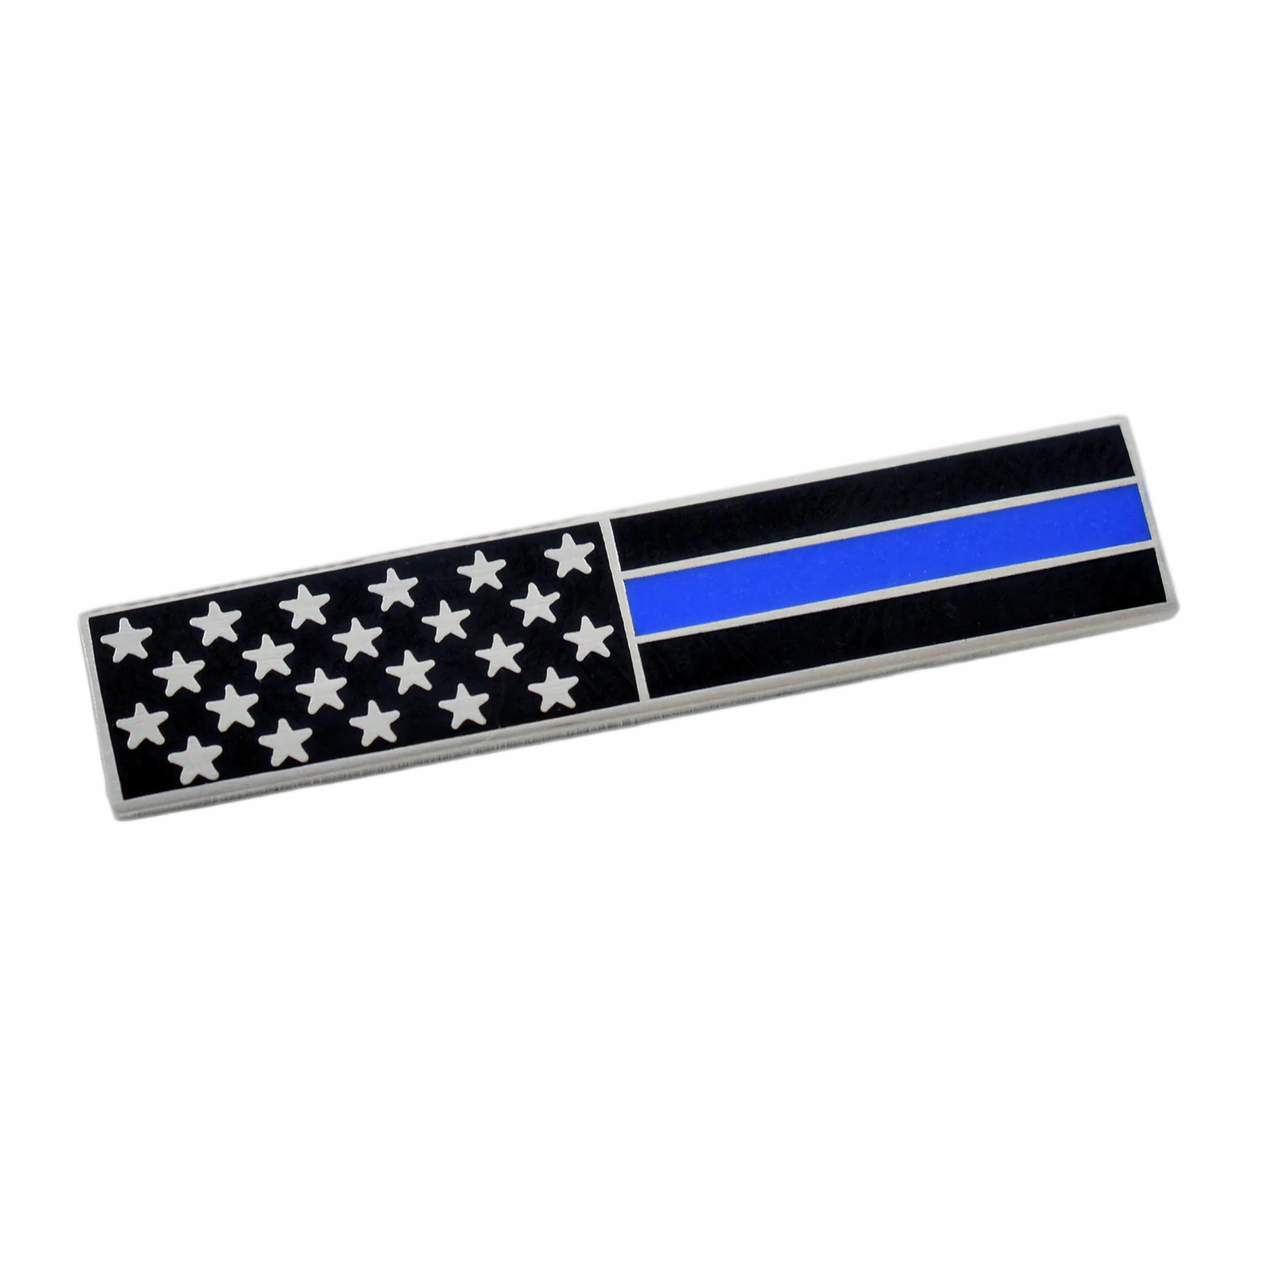 THIN BLUE LINE MOURNING BAR